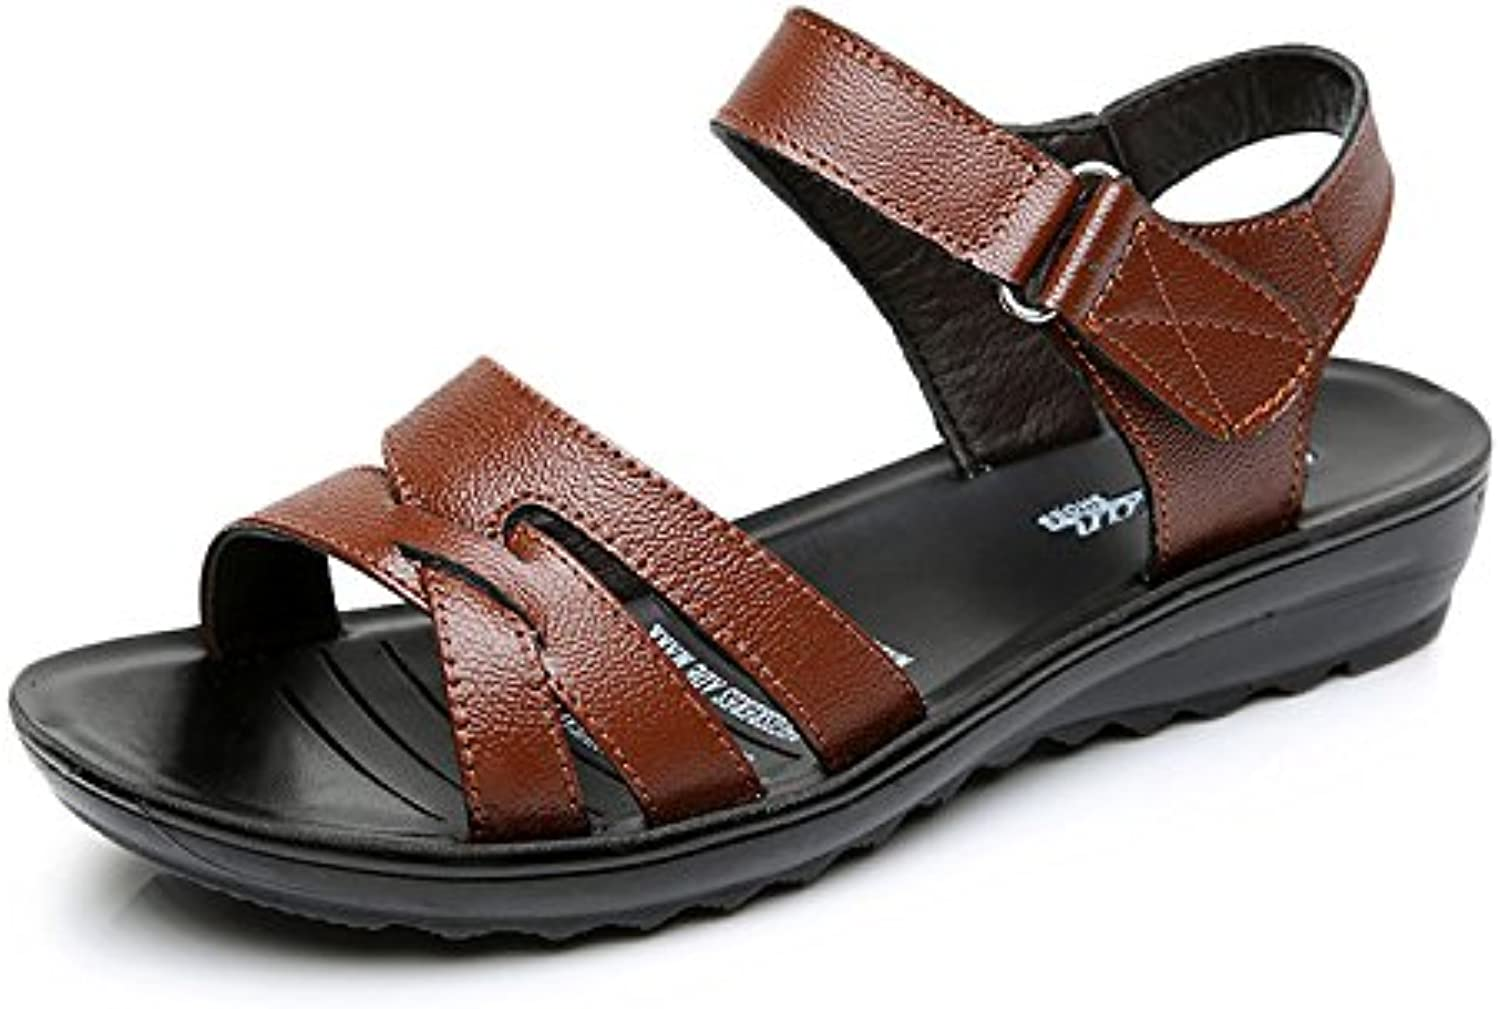 LHJY New Sandals Casual Sandals and Sandals for Antiskid Sandals